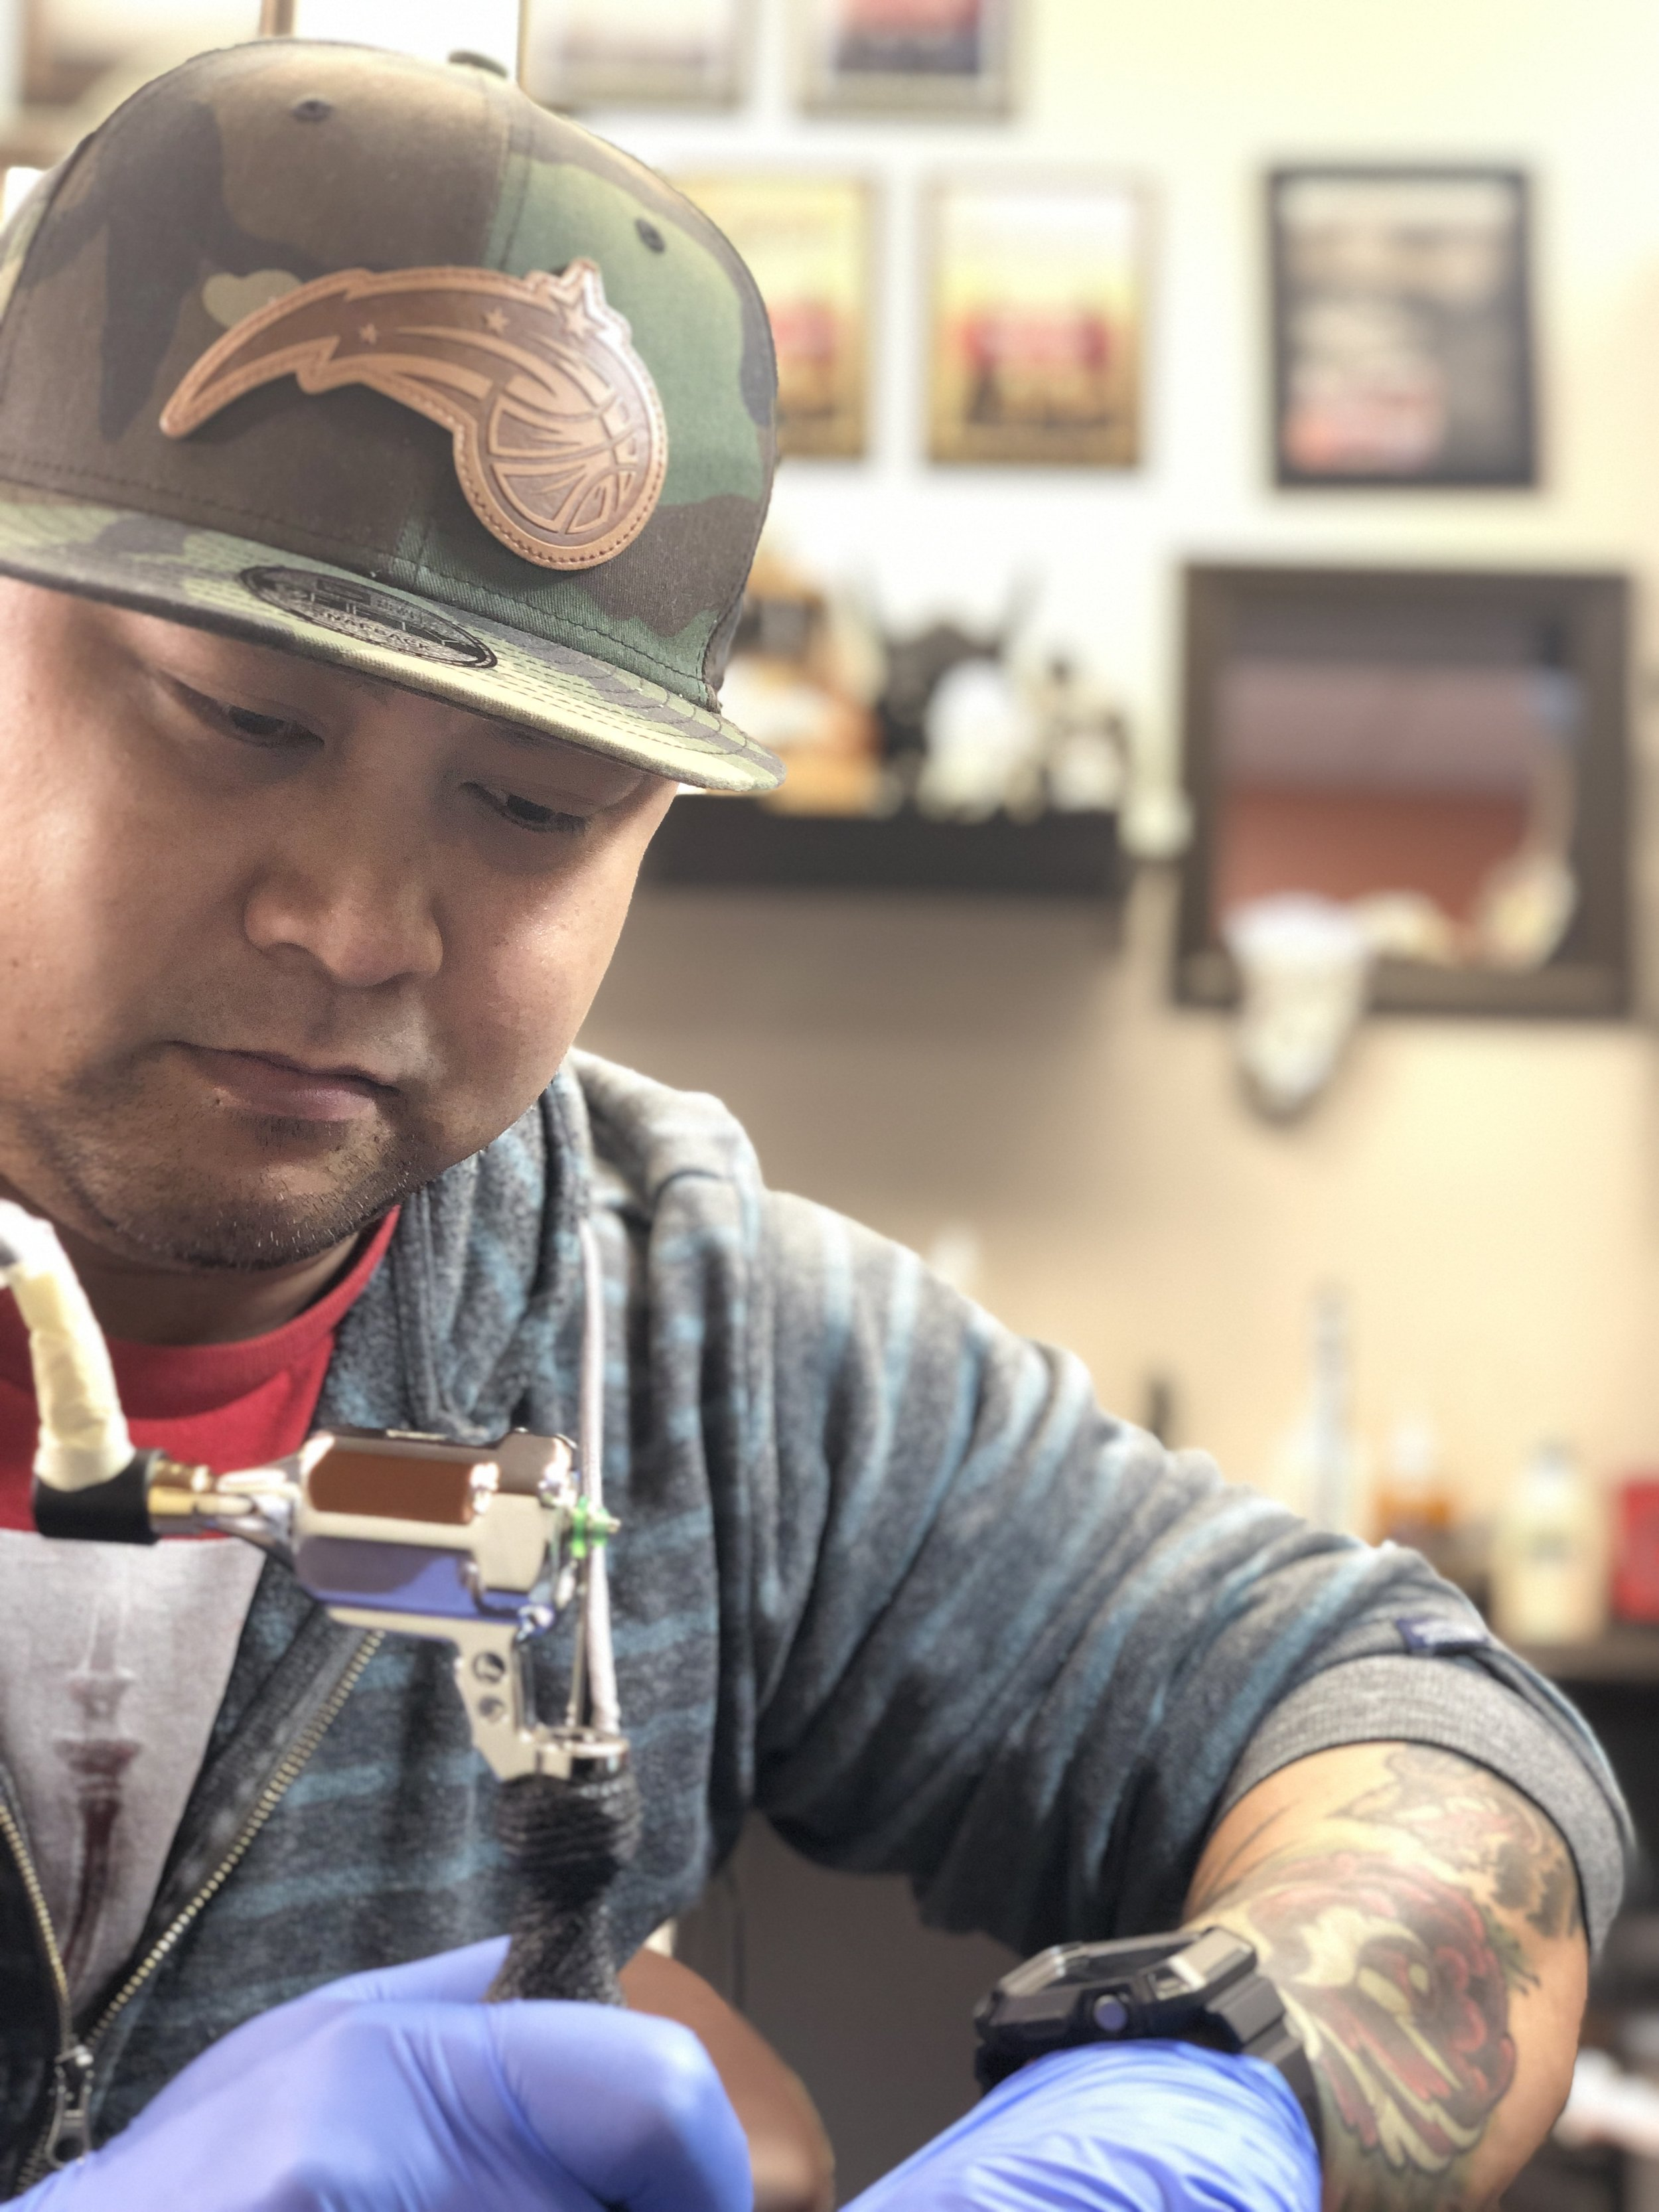 Jhed Guevara - Jhed is from Farmington Hills, Michigan. Born and raised in the Philippines, he came to the US in 2004. He has been tattooing for 6 years and considers himself a well rounded tattoo artist of any style. Jhed loves to tattoo fusions of different styles for example, color realism with a blackwork background. He also loves doing black & grey realism. Jhed has won several awards from the 2017 & 2018 Motor City Tattoo Expo in Detroit. Click his picture to check out his work.